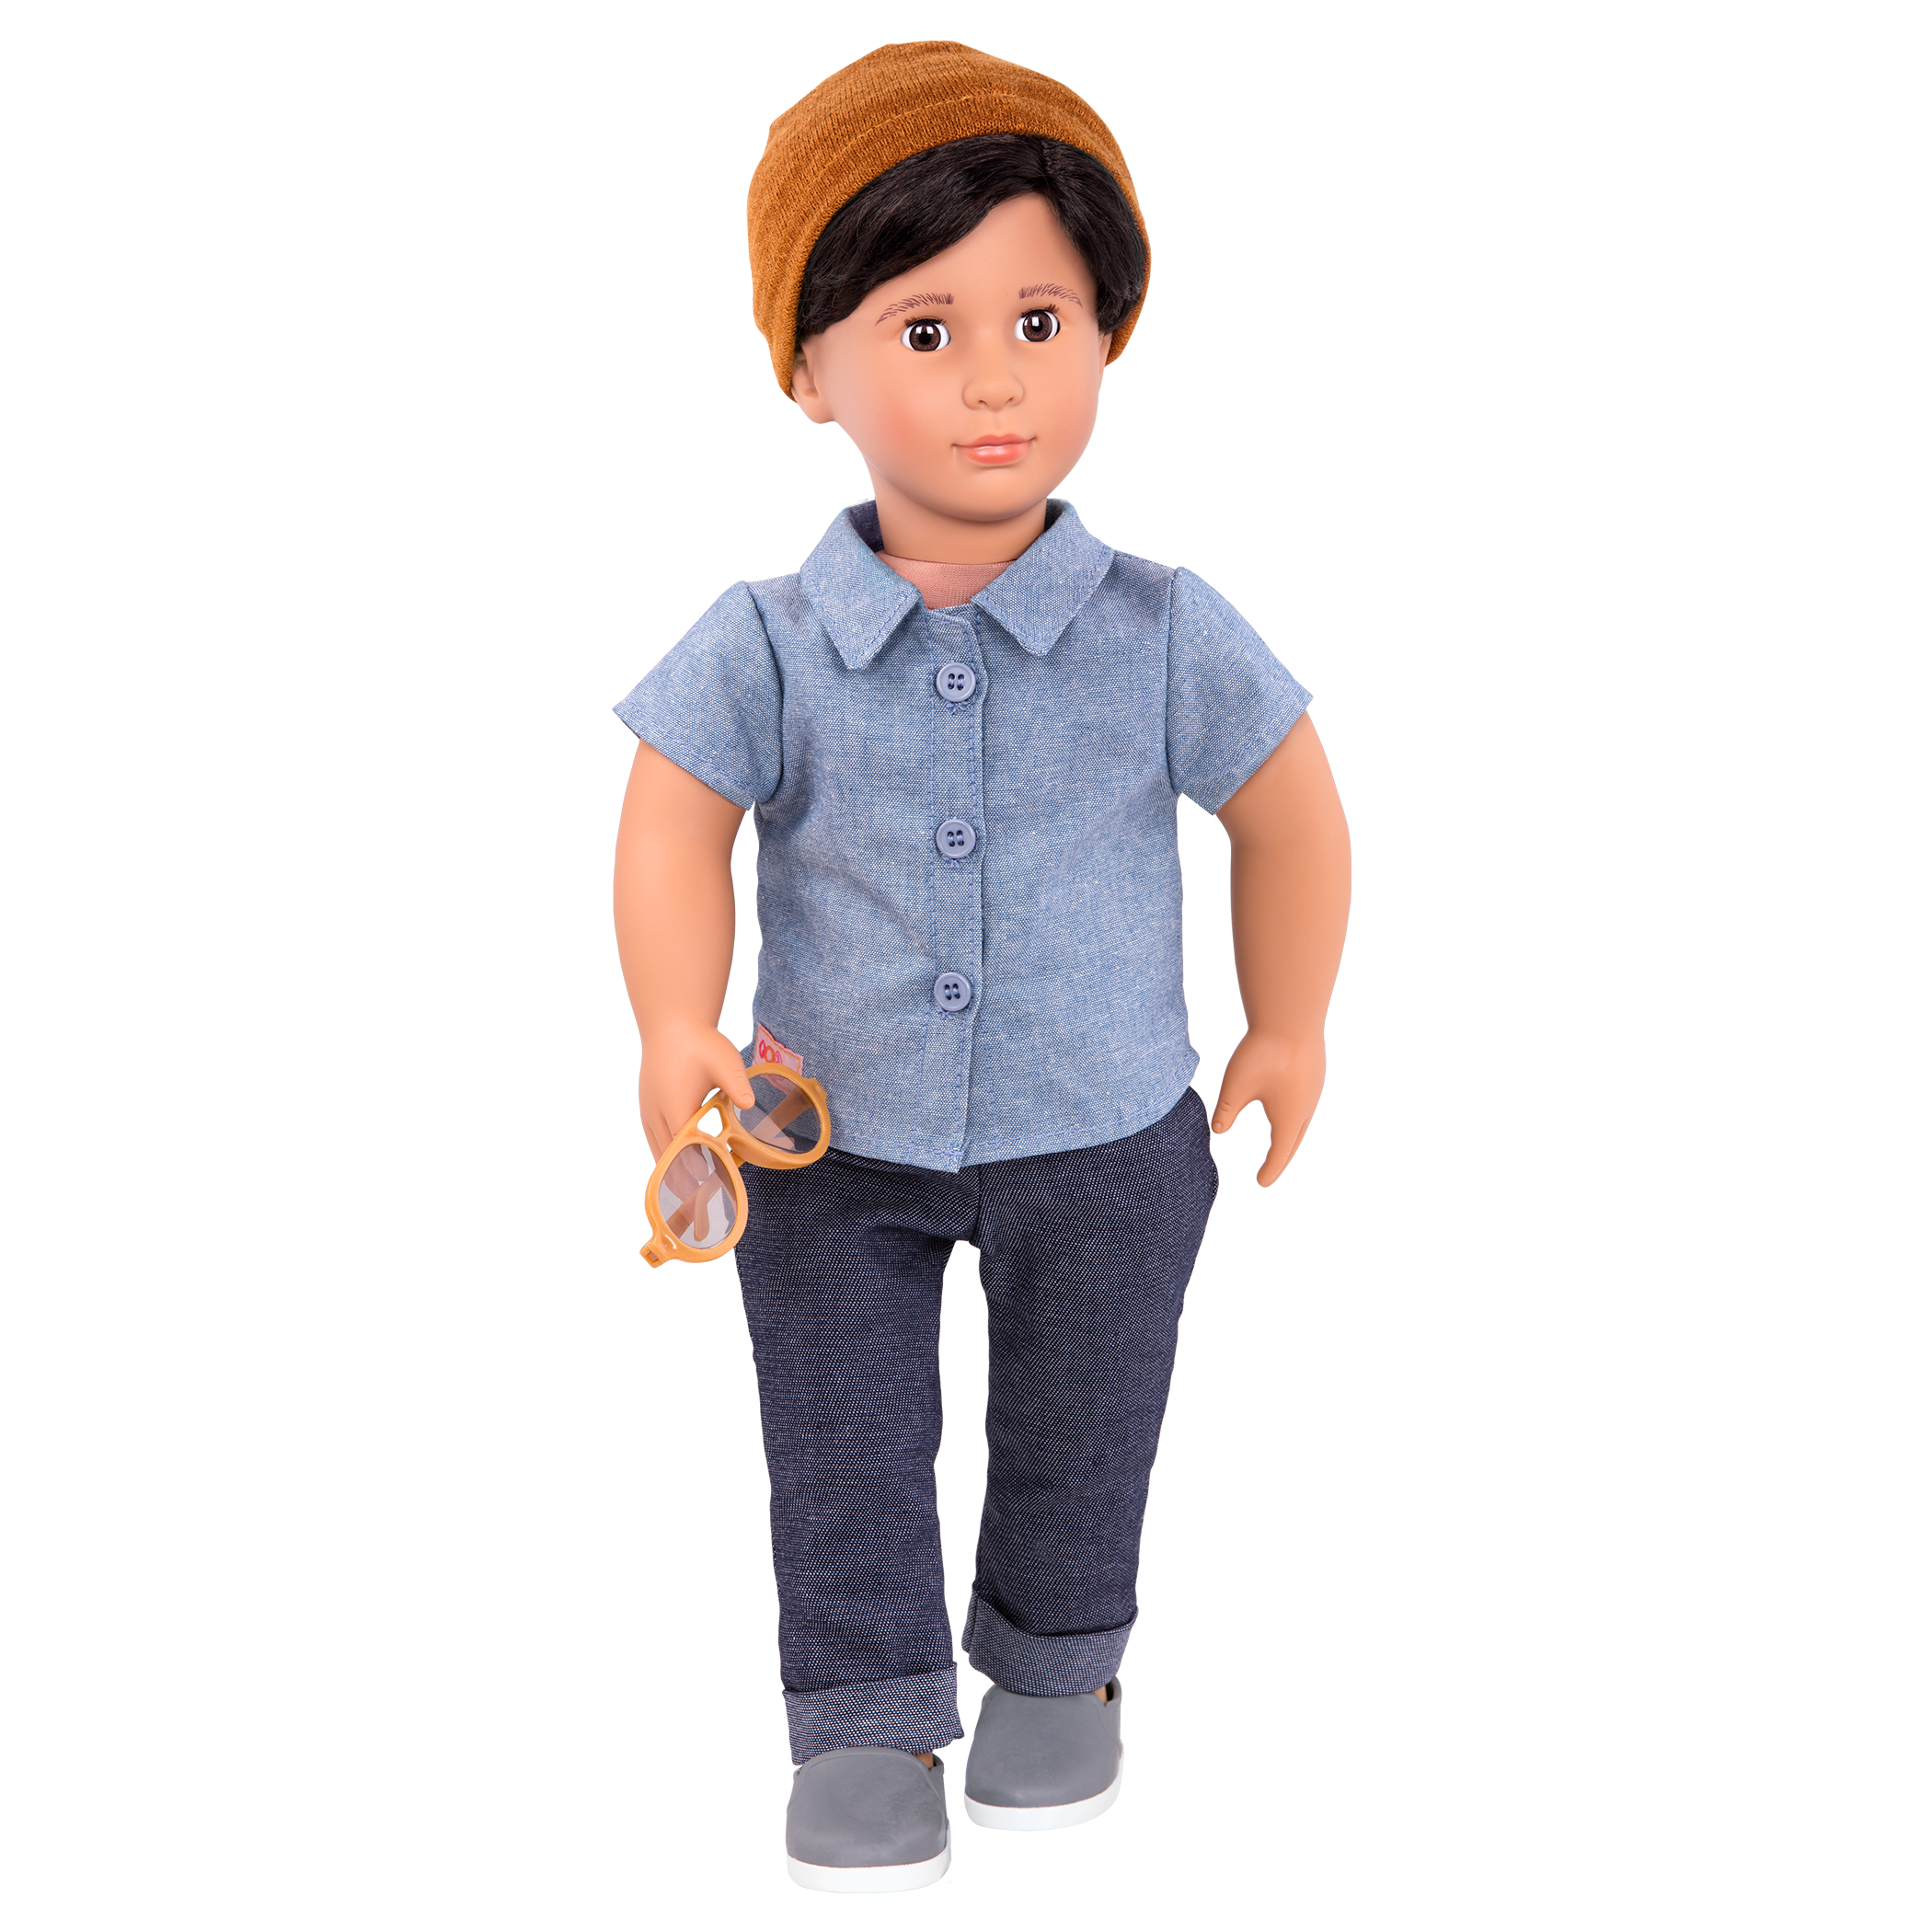 Franco Regular 18-inch Boy Doll